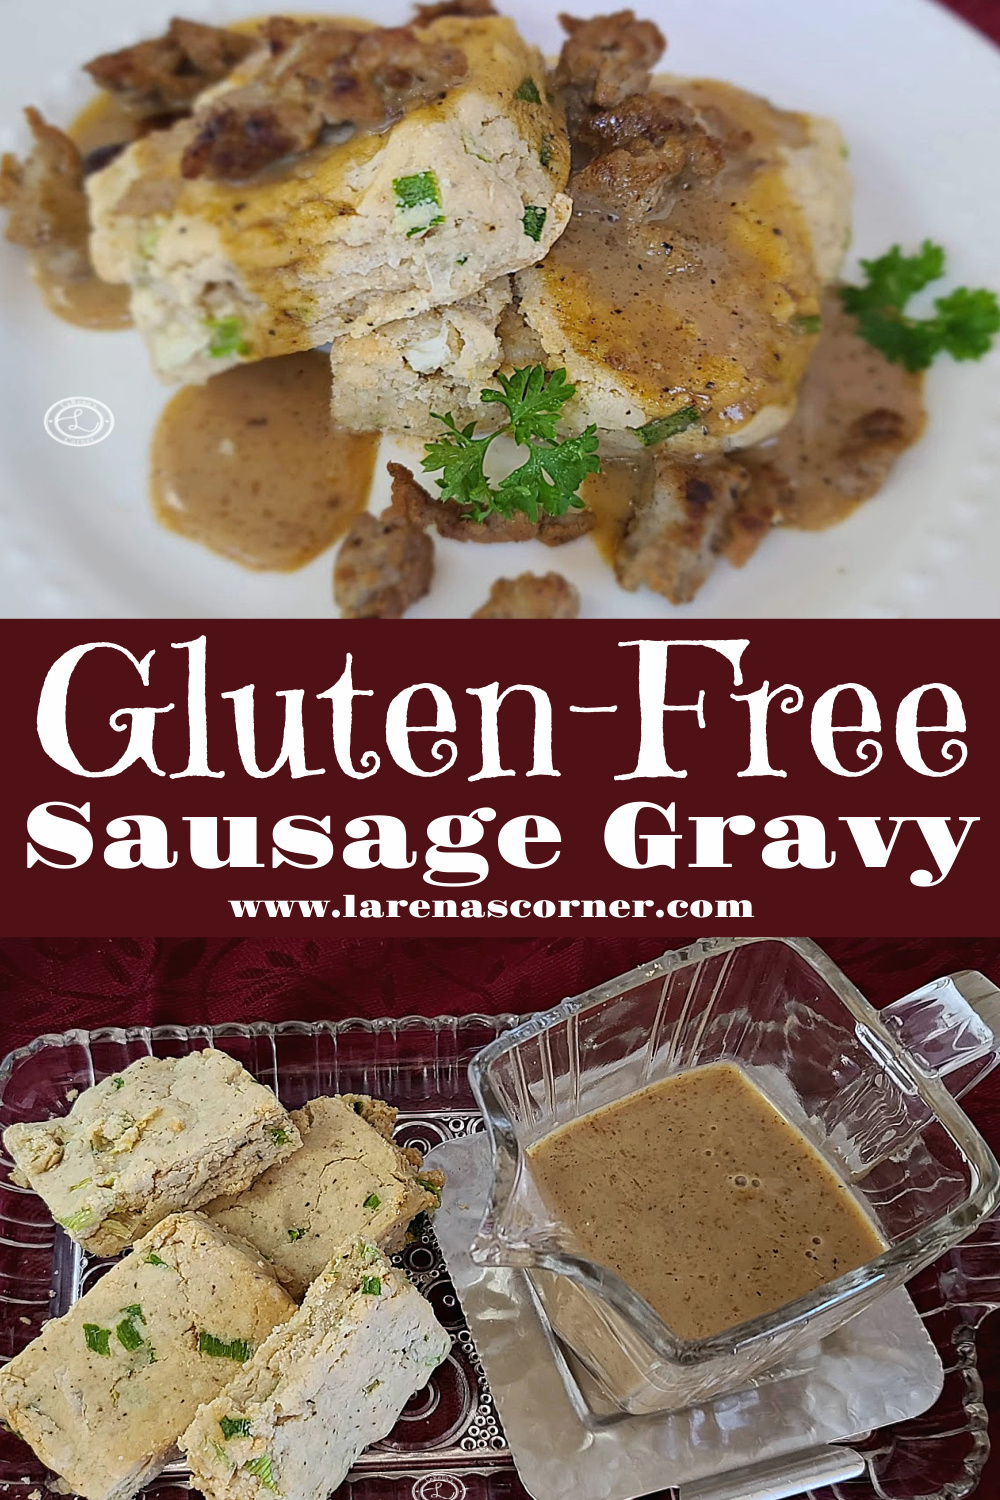 Gluten-Free Sausage Gravy. 2 Pictures one of a platter with biscuits on the side and gravy in a gravy boat. One picture of gravy on top of biscuits.